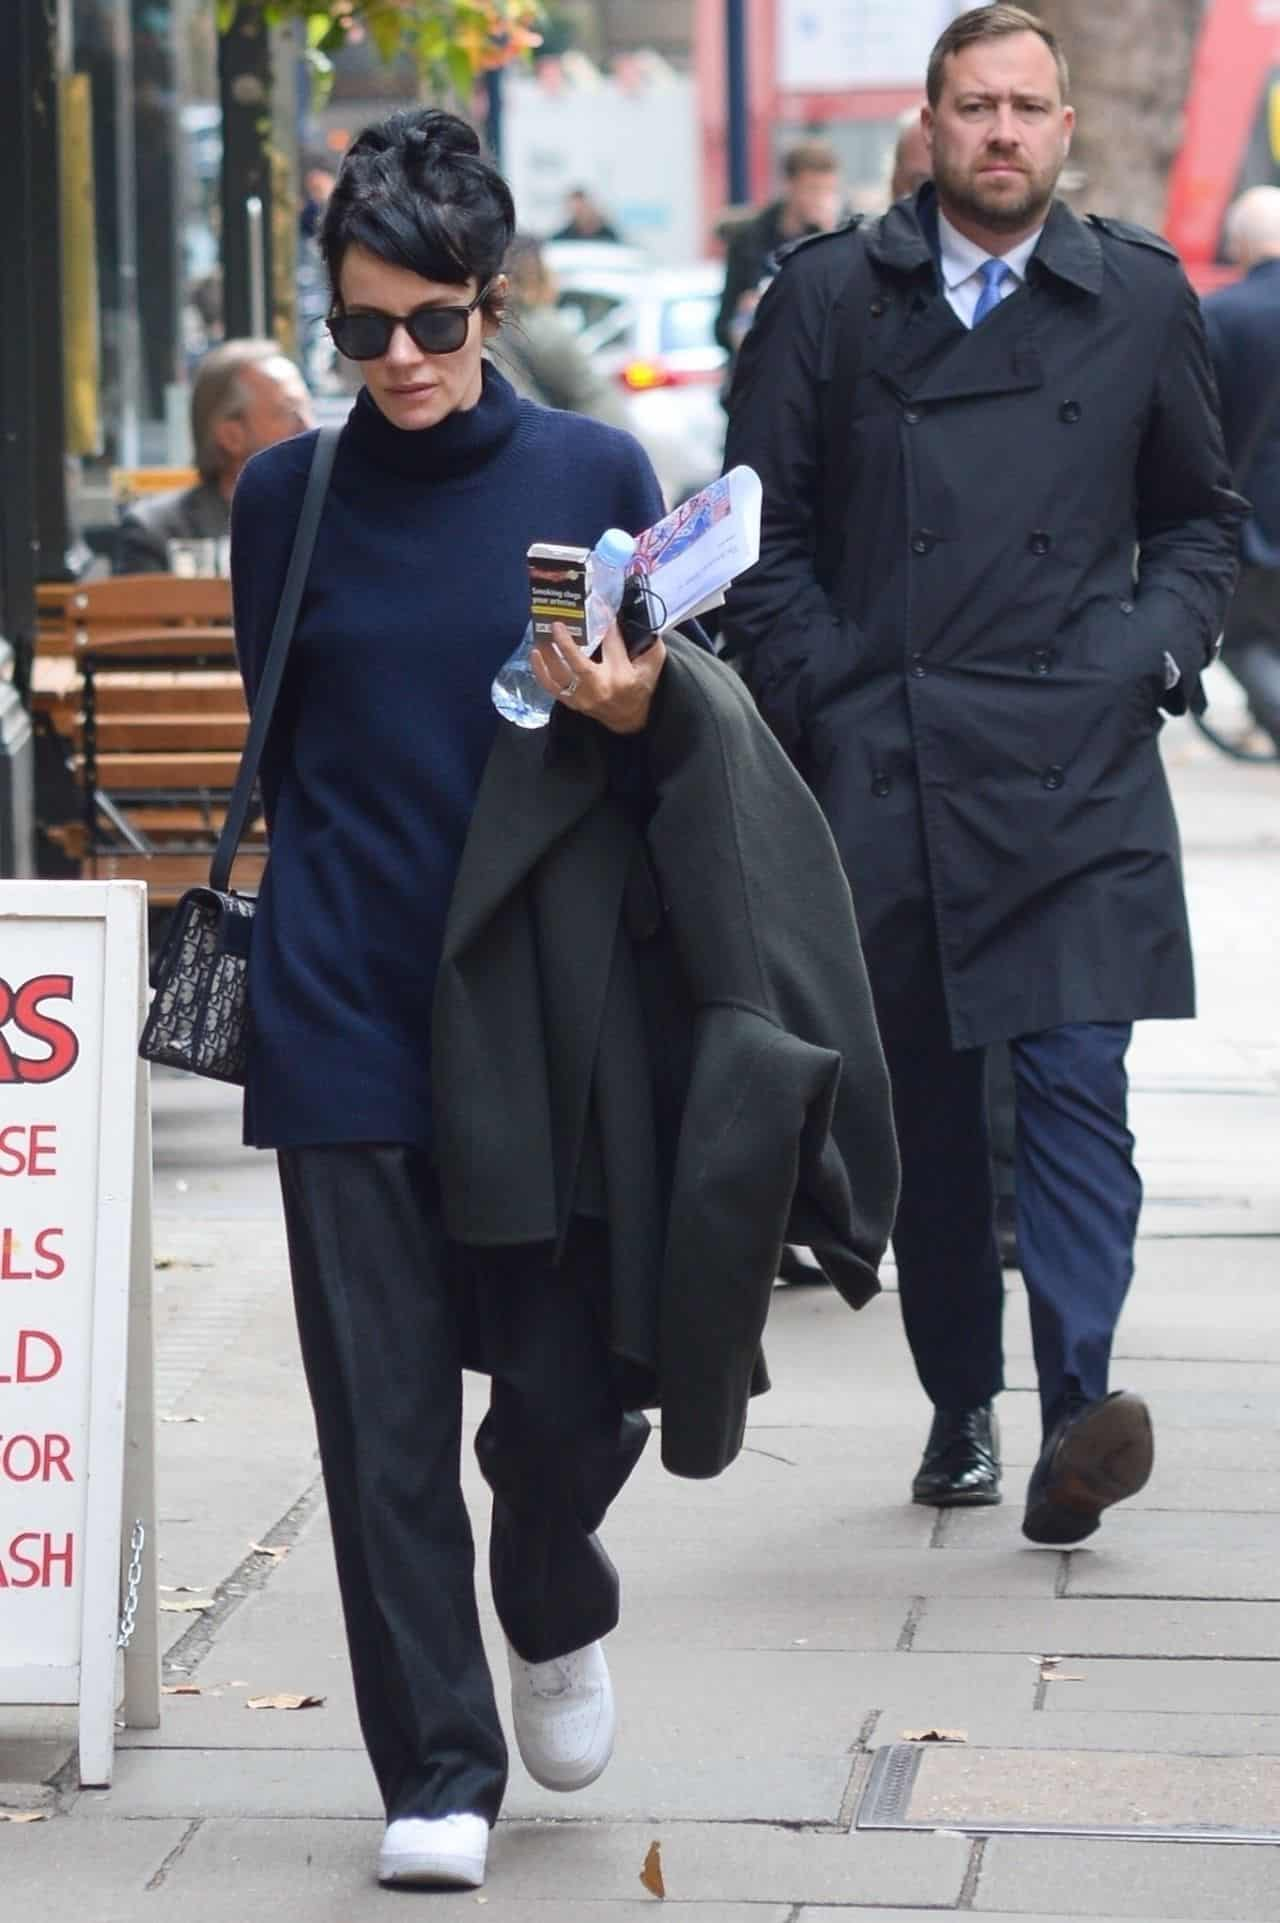 Lily Allen Looks Comfortable in an Oversized Turtleneck Sweater in London